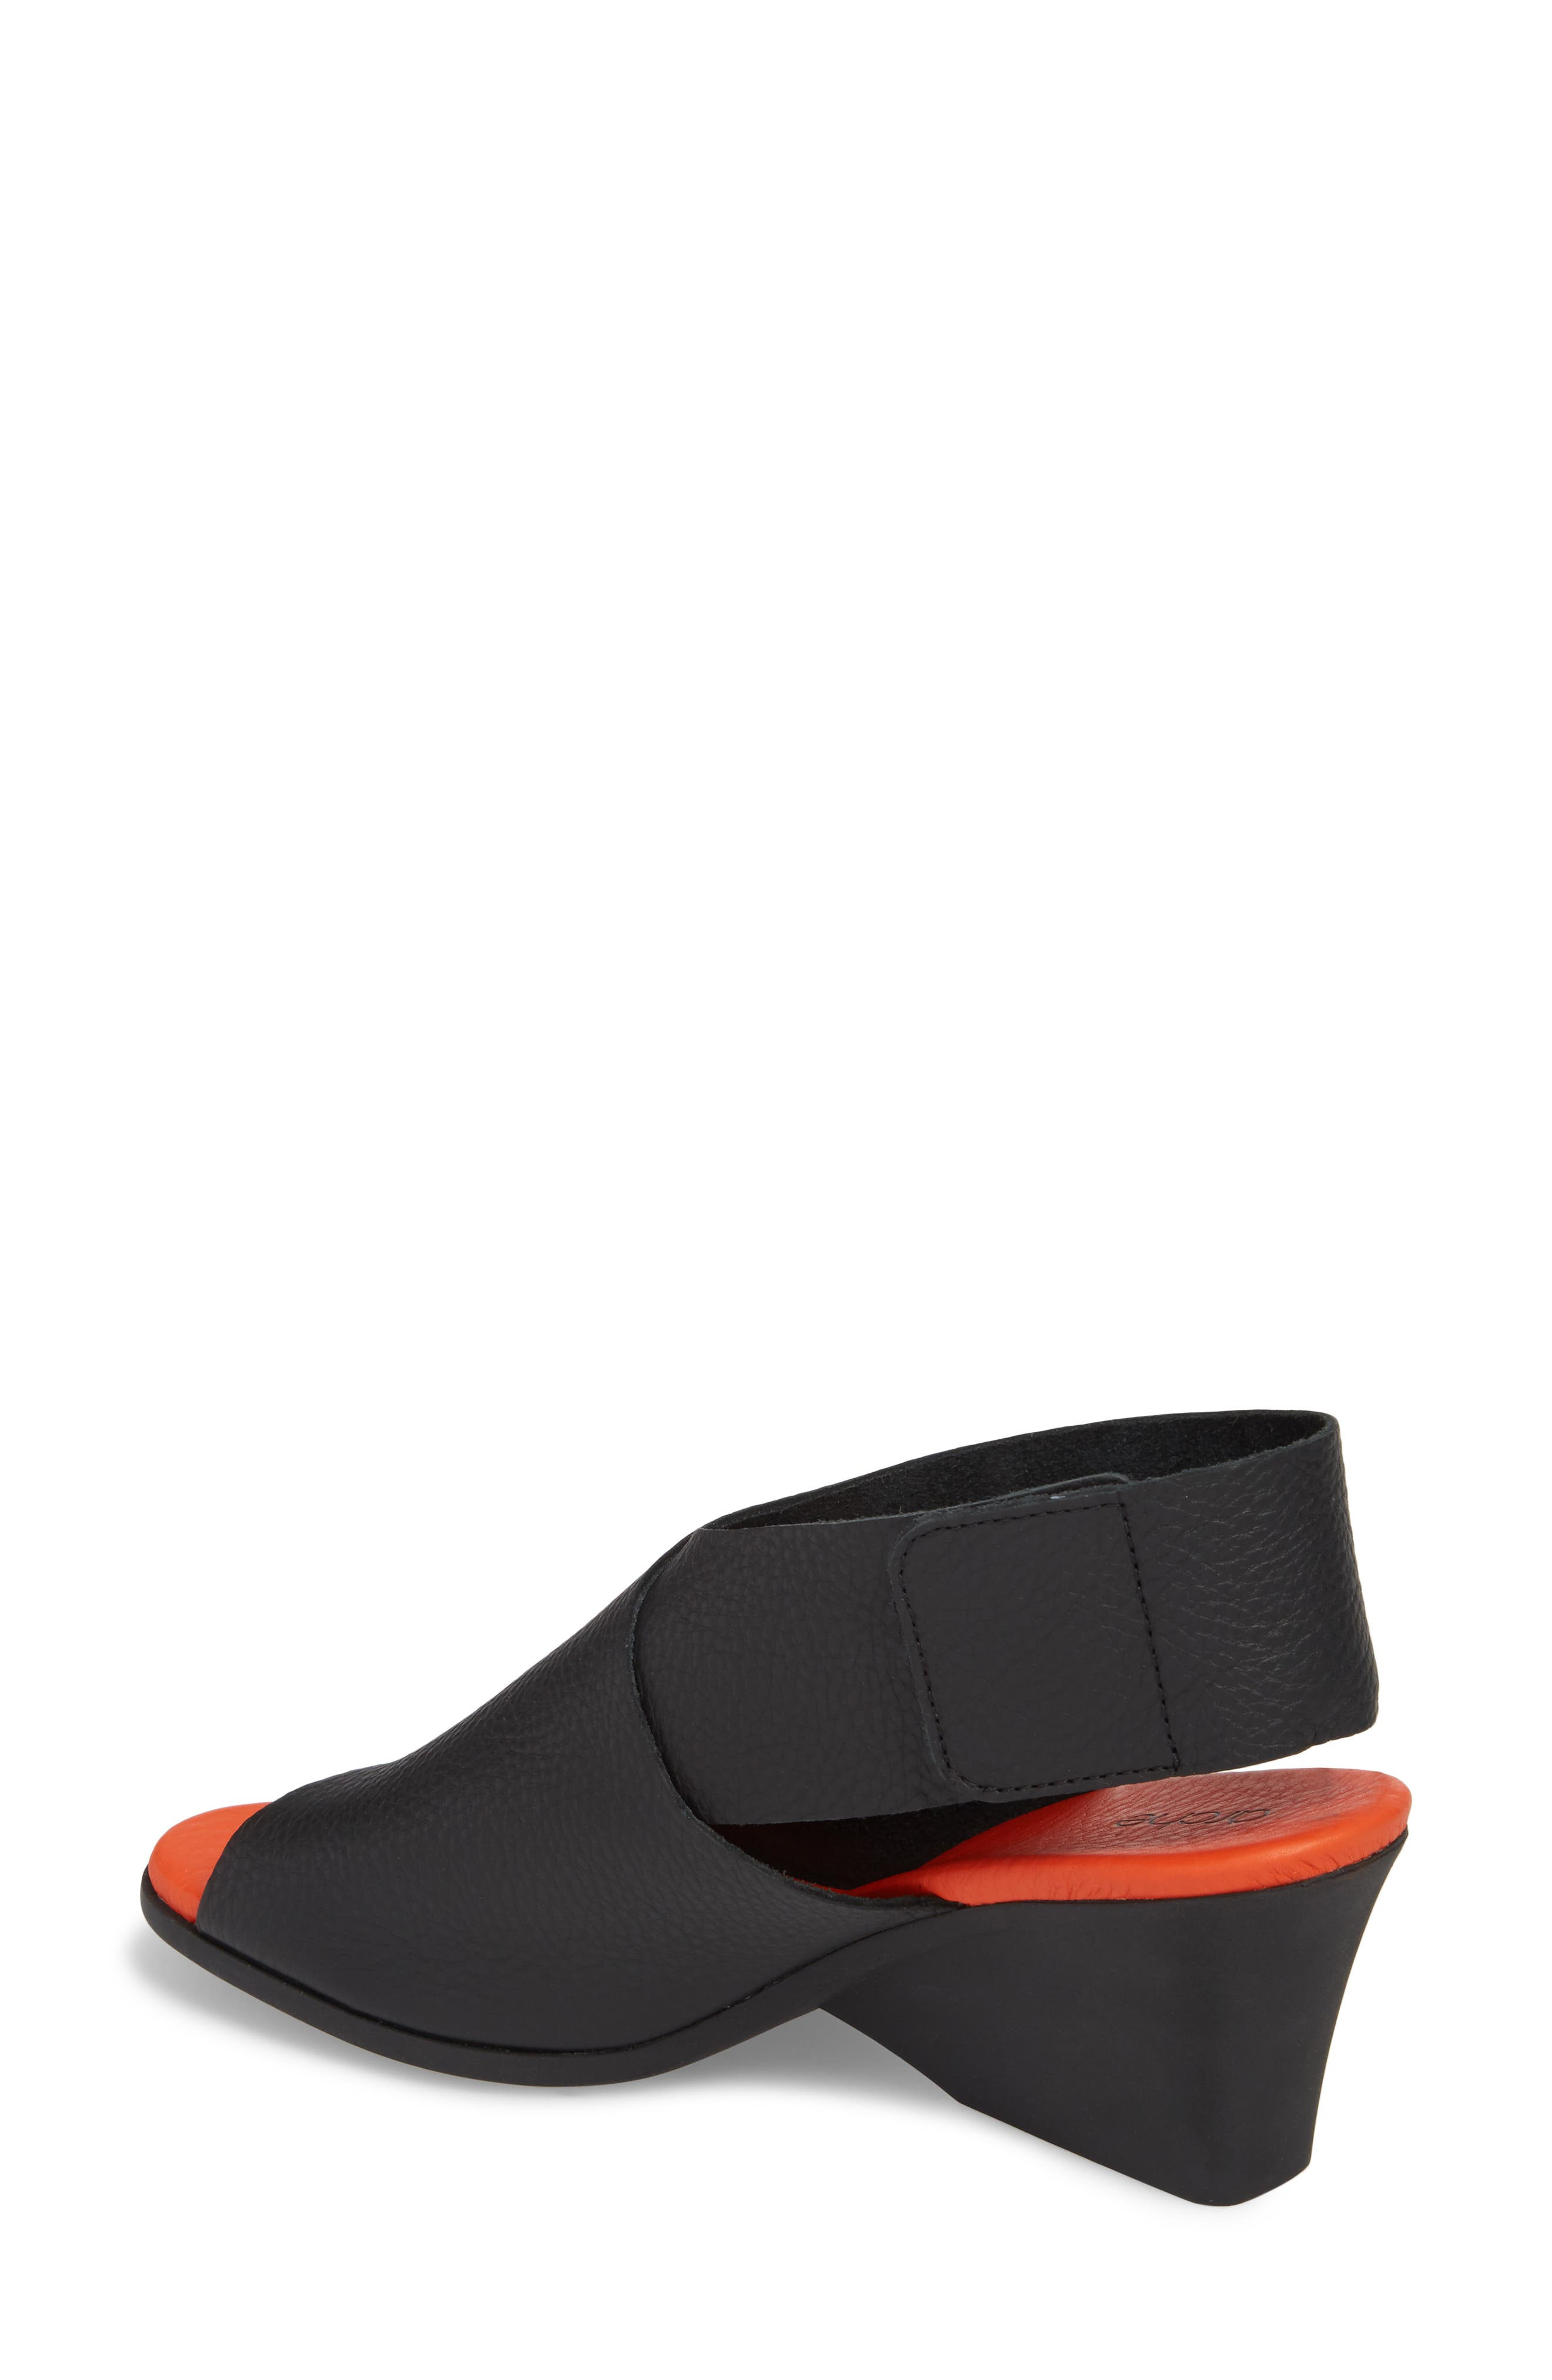 Ritual Wedge Sandal,                             Alternate thumbnail 2, color,                             Noir/ Paradis Leather